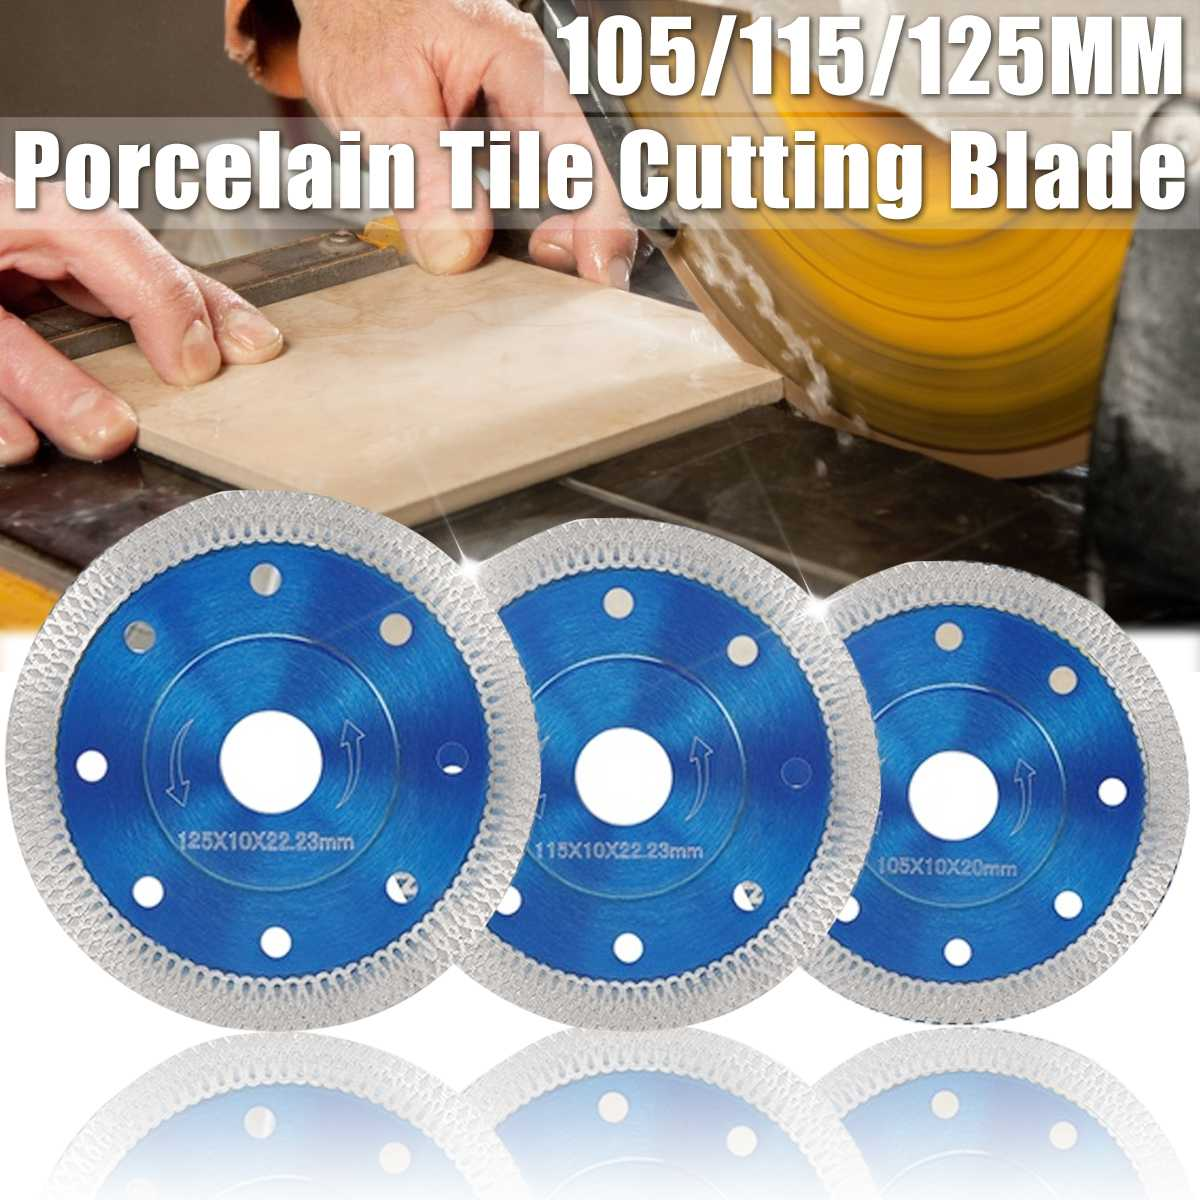 105/115/125mm Microcrystalline Vitrified Ceramic Tiles Diamond Saw Blades Porcelain Tile Cutting Blades Angle Grinder Blade